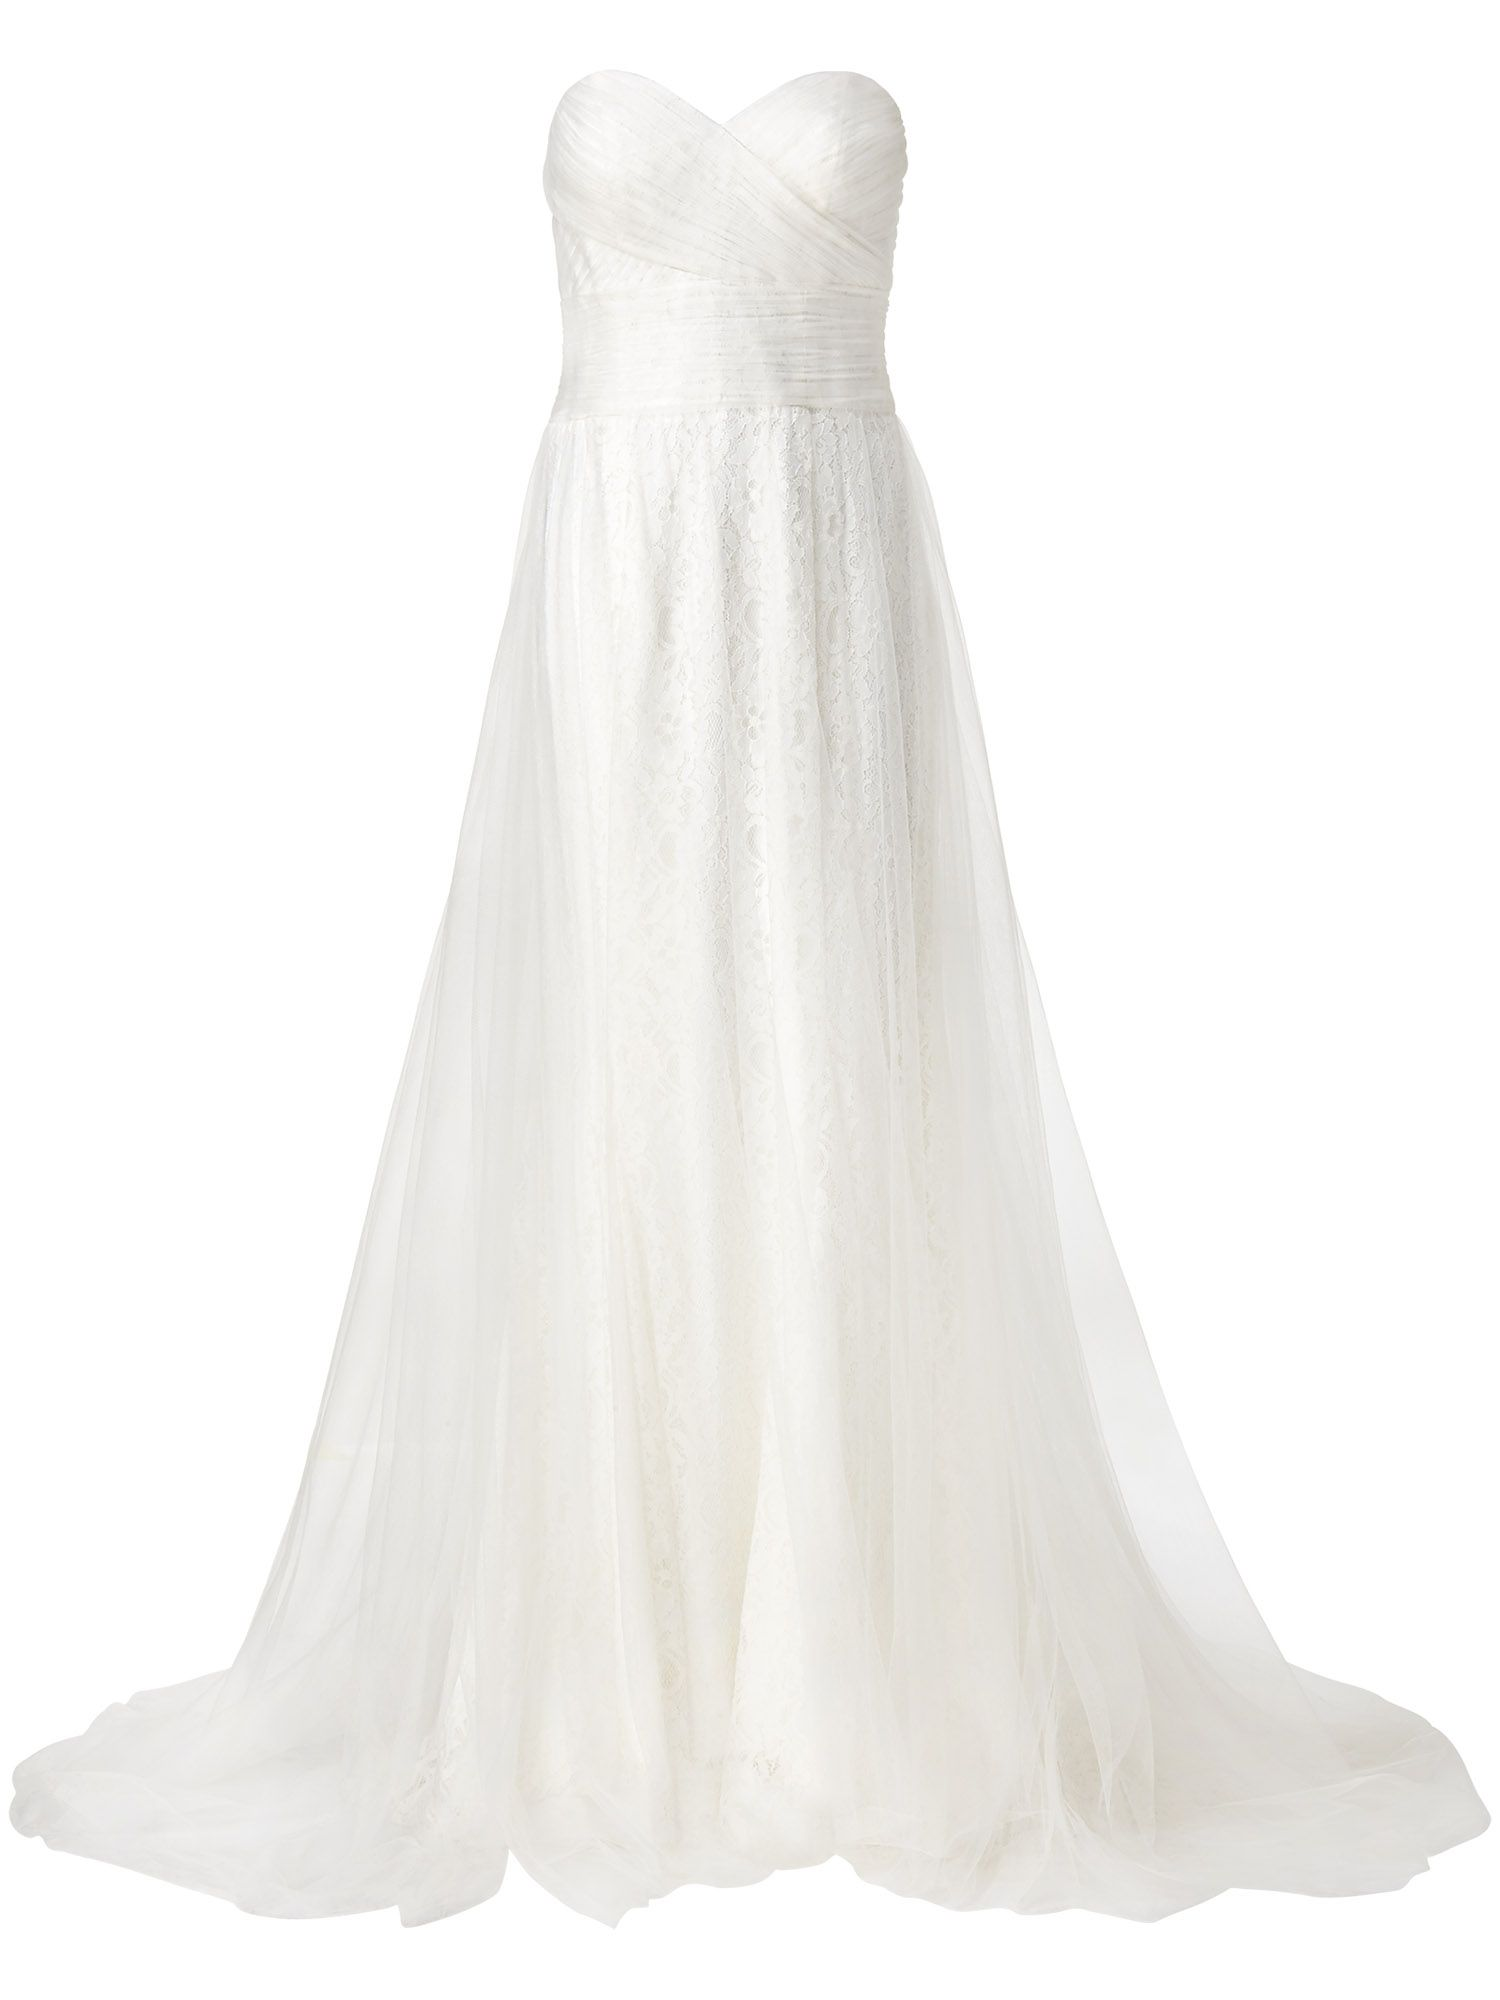 Esme wedding dress